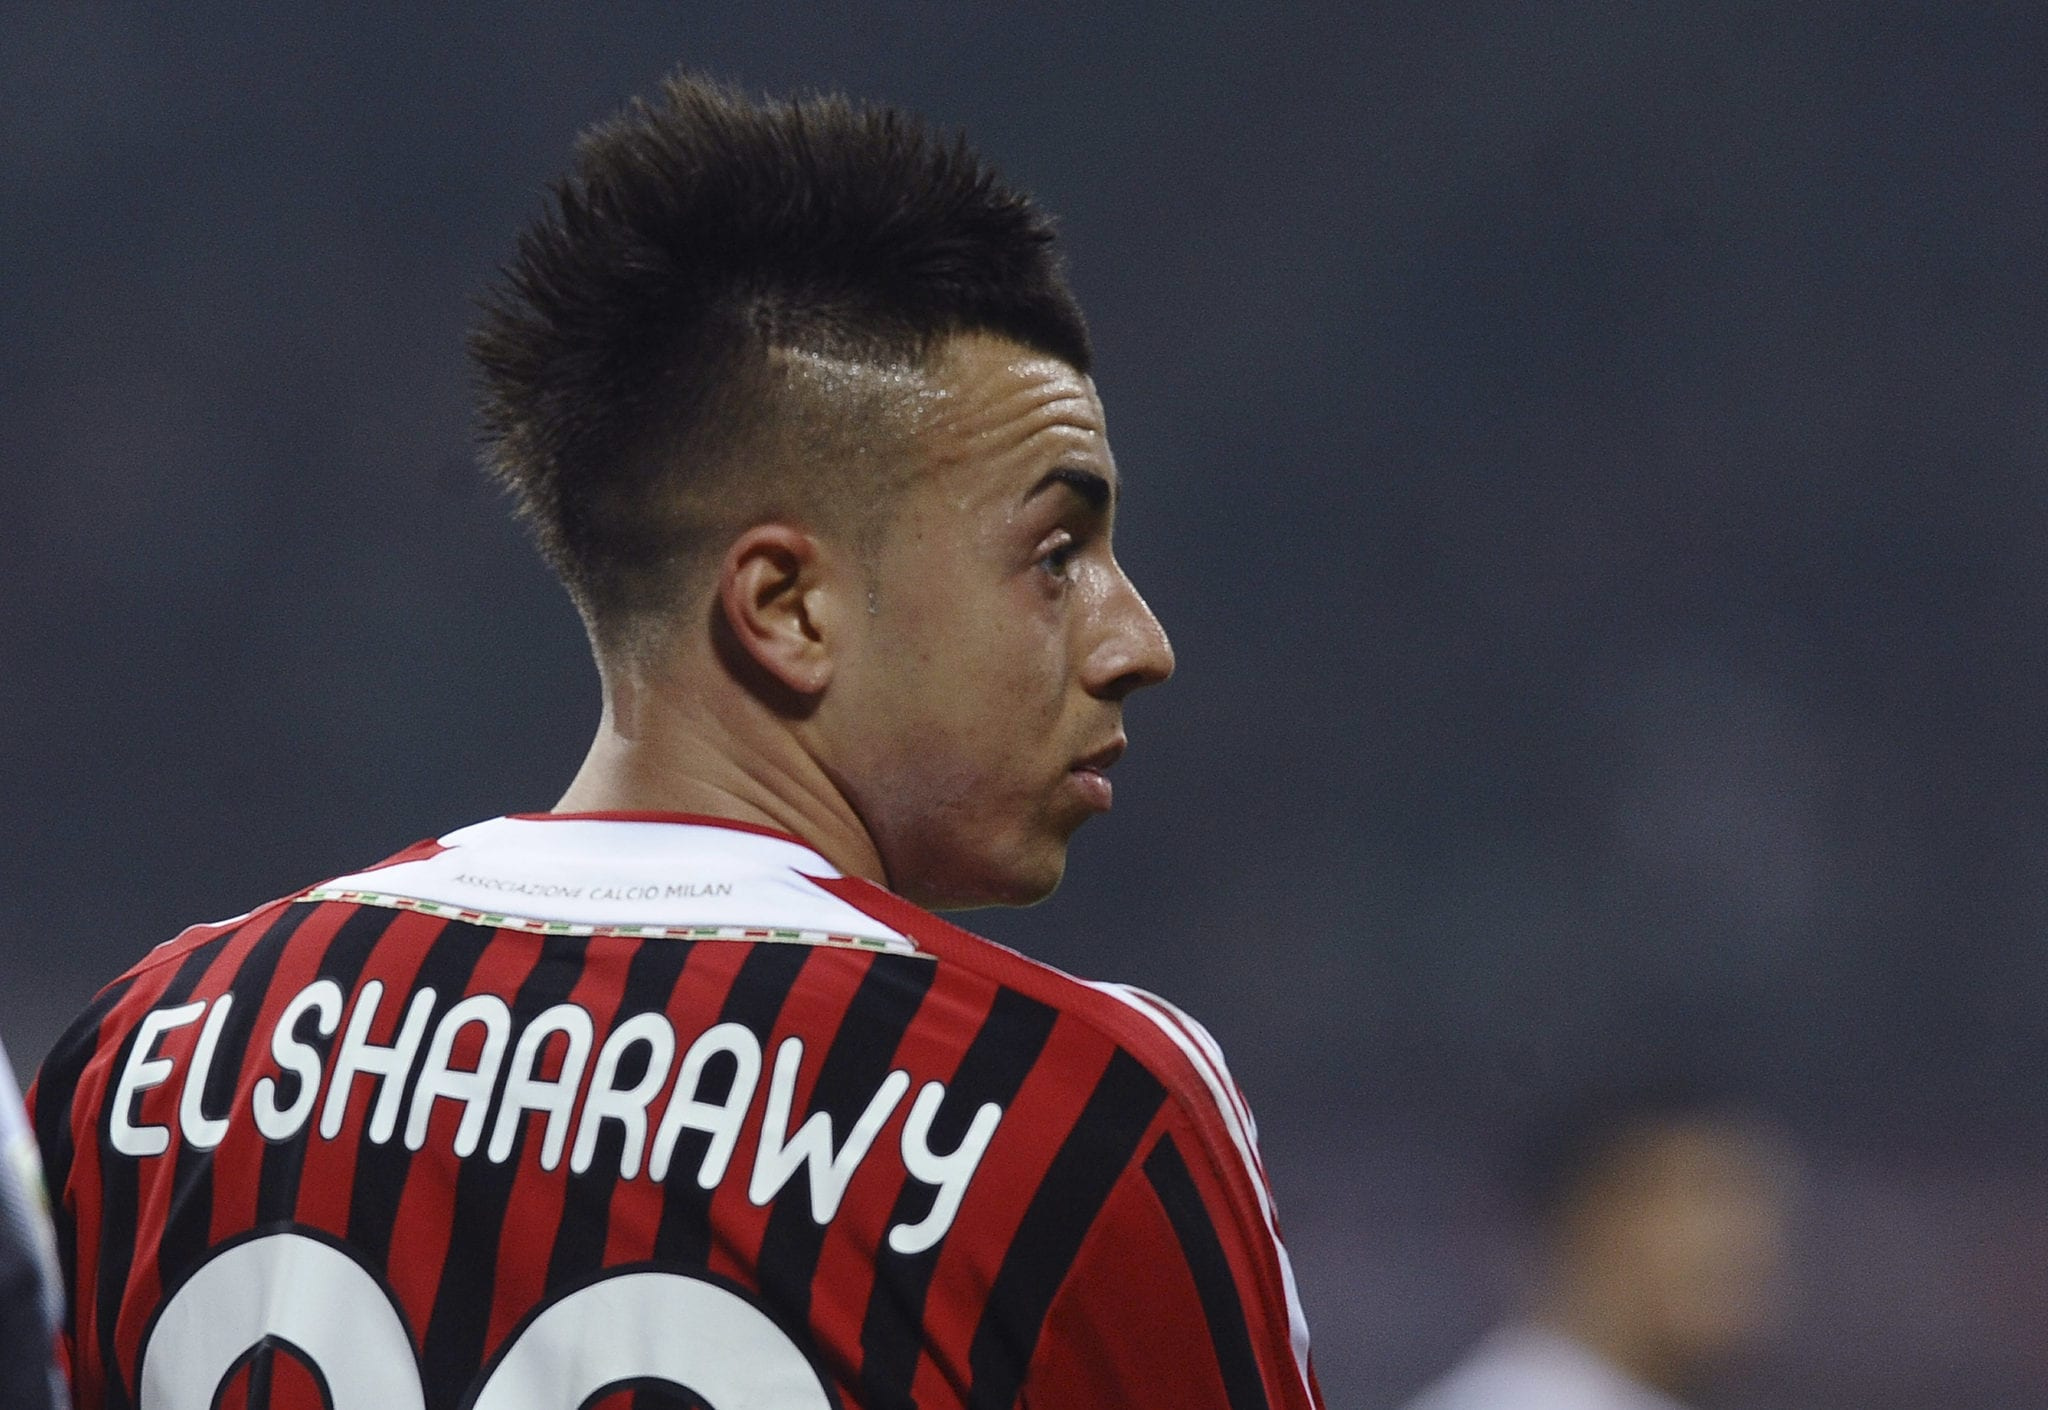 stephan el shaarawy | © Dino Panato/Getty Images